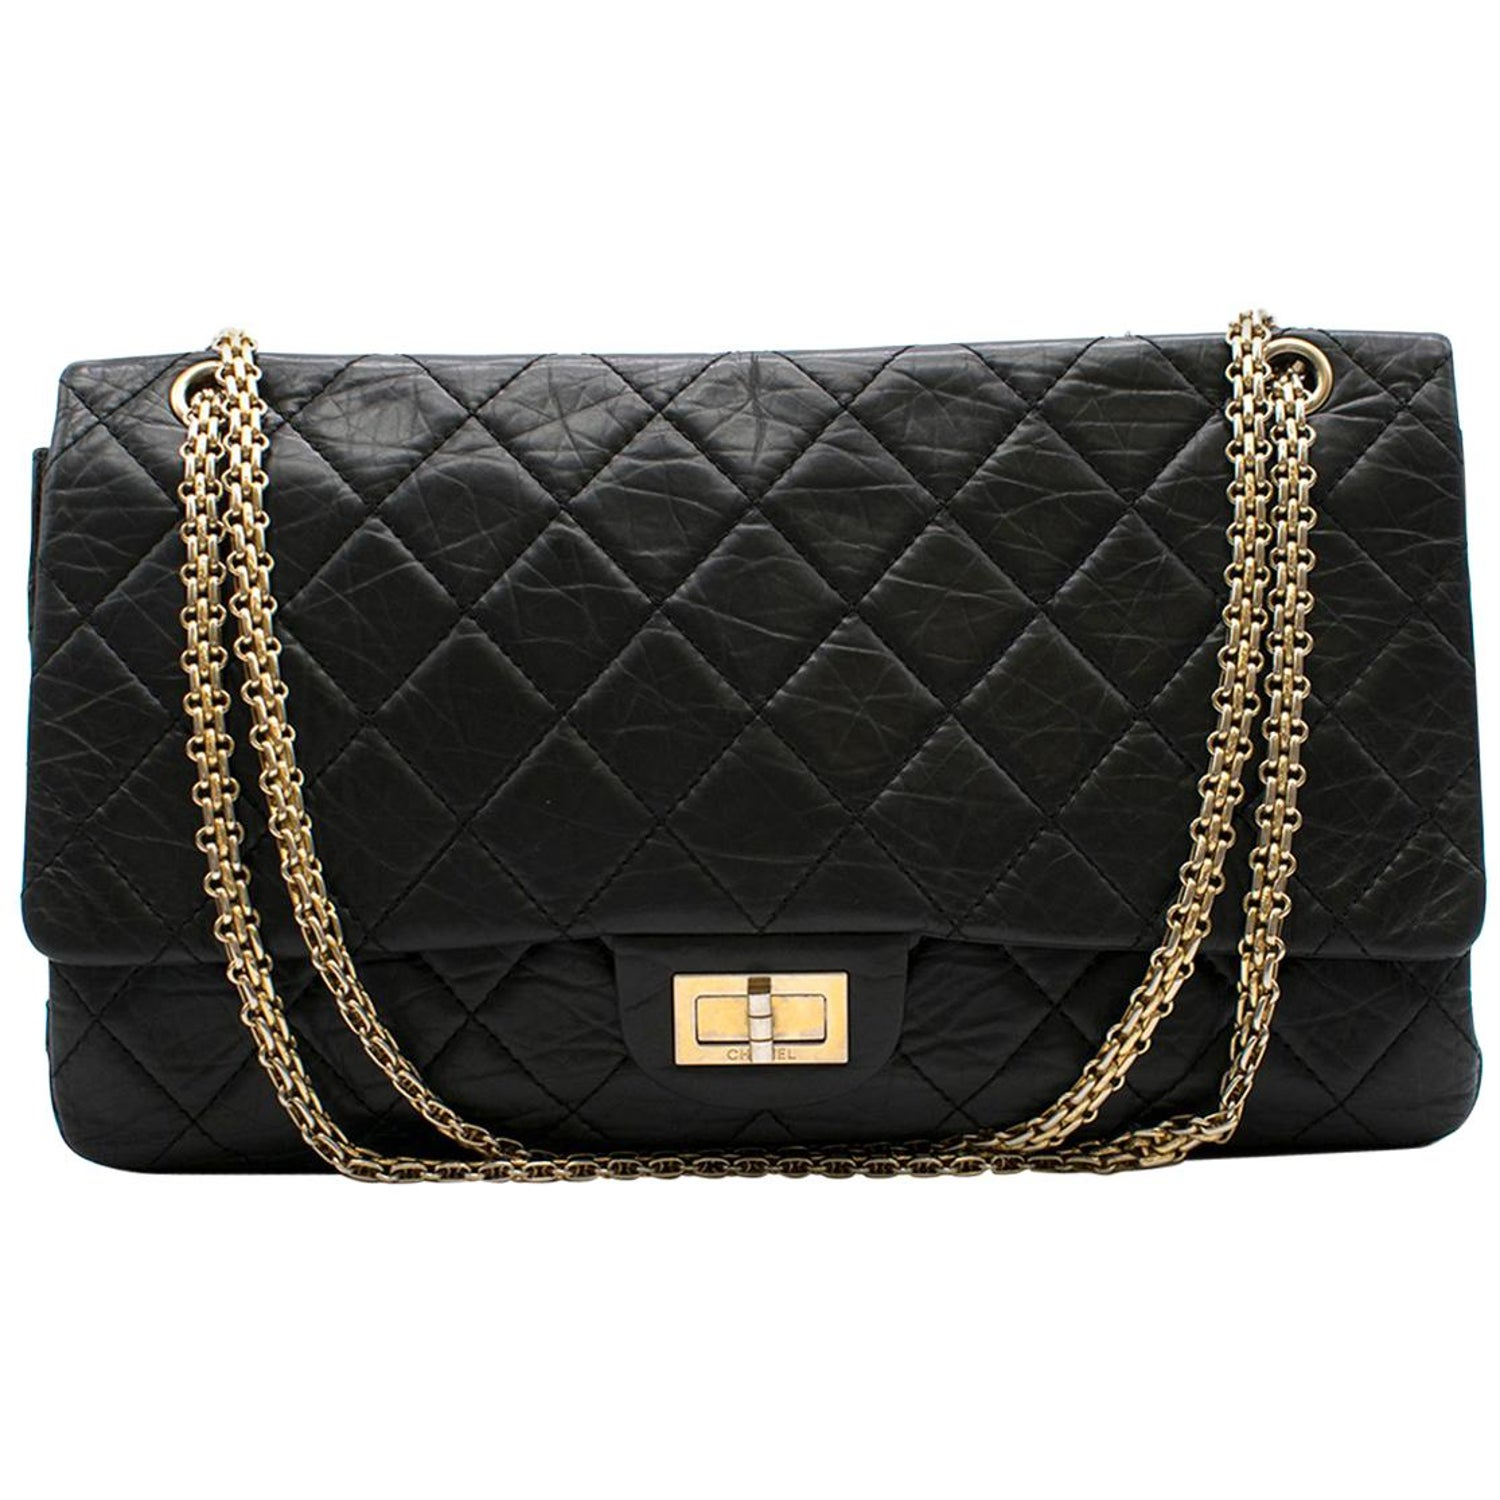 c5b7ef5f3da23c Chanel 2.55 Jumbo Reissue double-flap quilted leather bag at 1stdibs